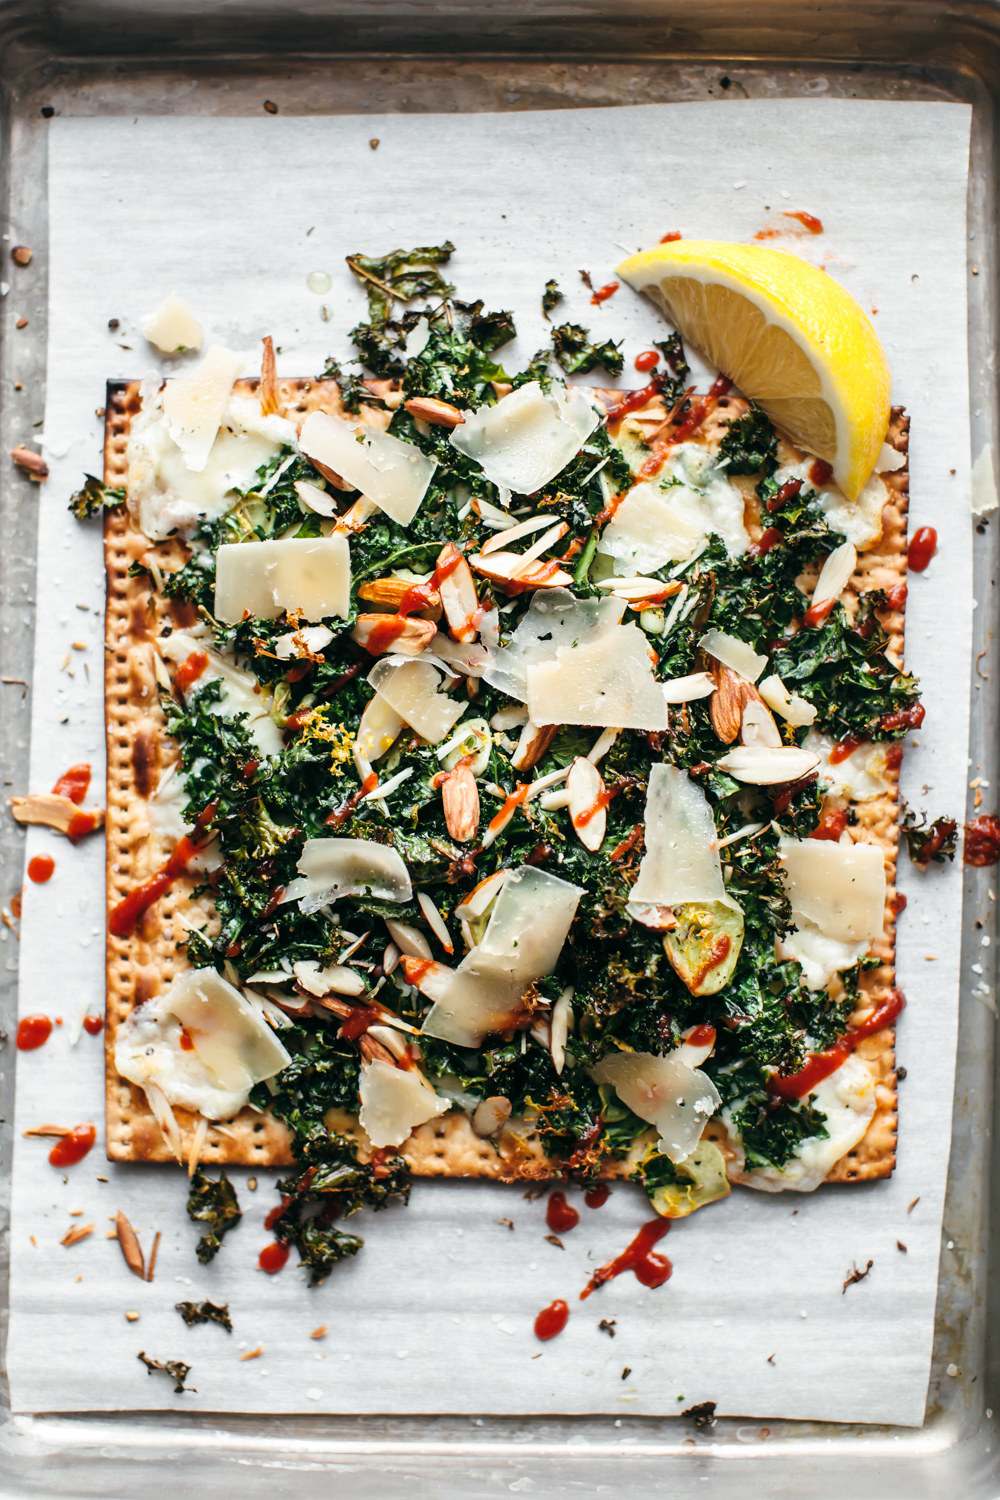 Matzo pizza with kale, Parmesan, and almonds.